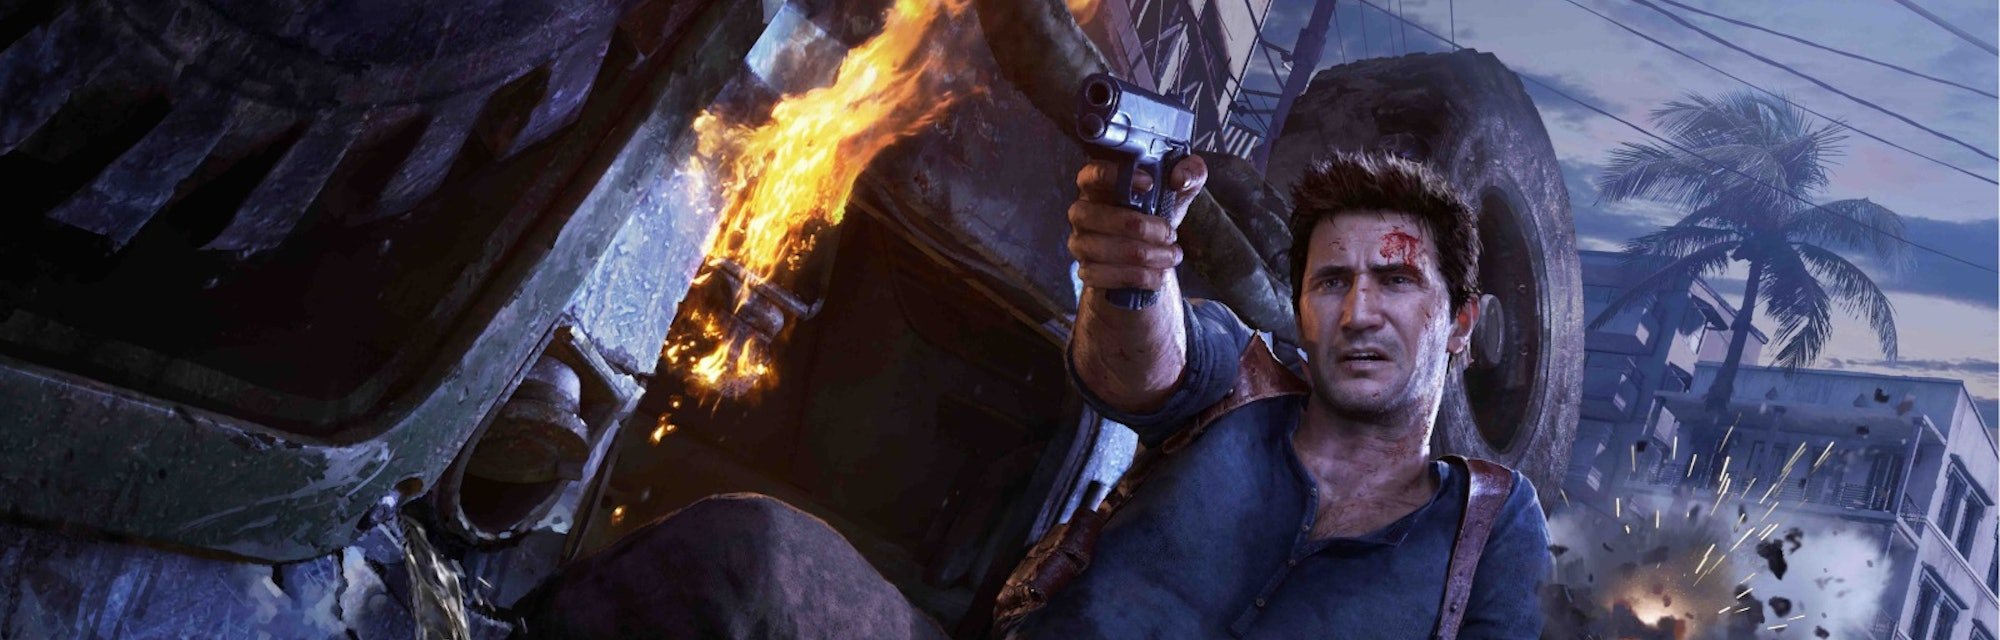 uncharted 1 gameplay time